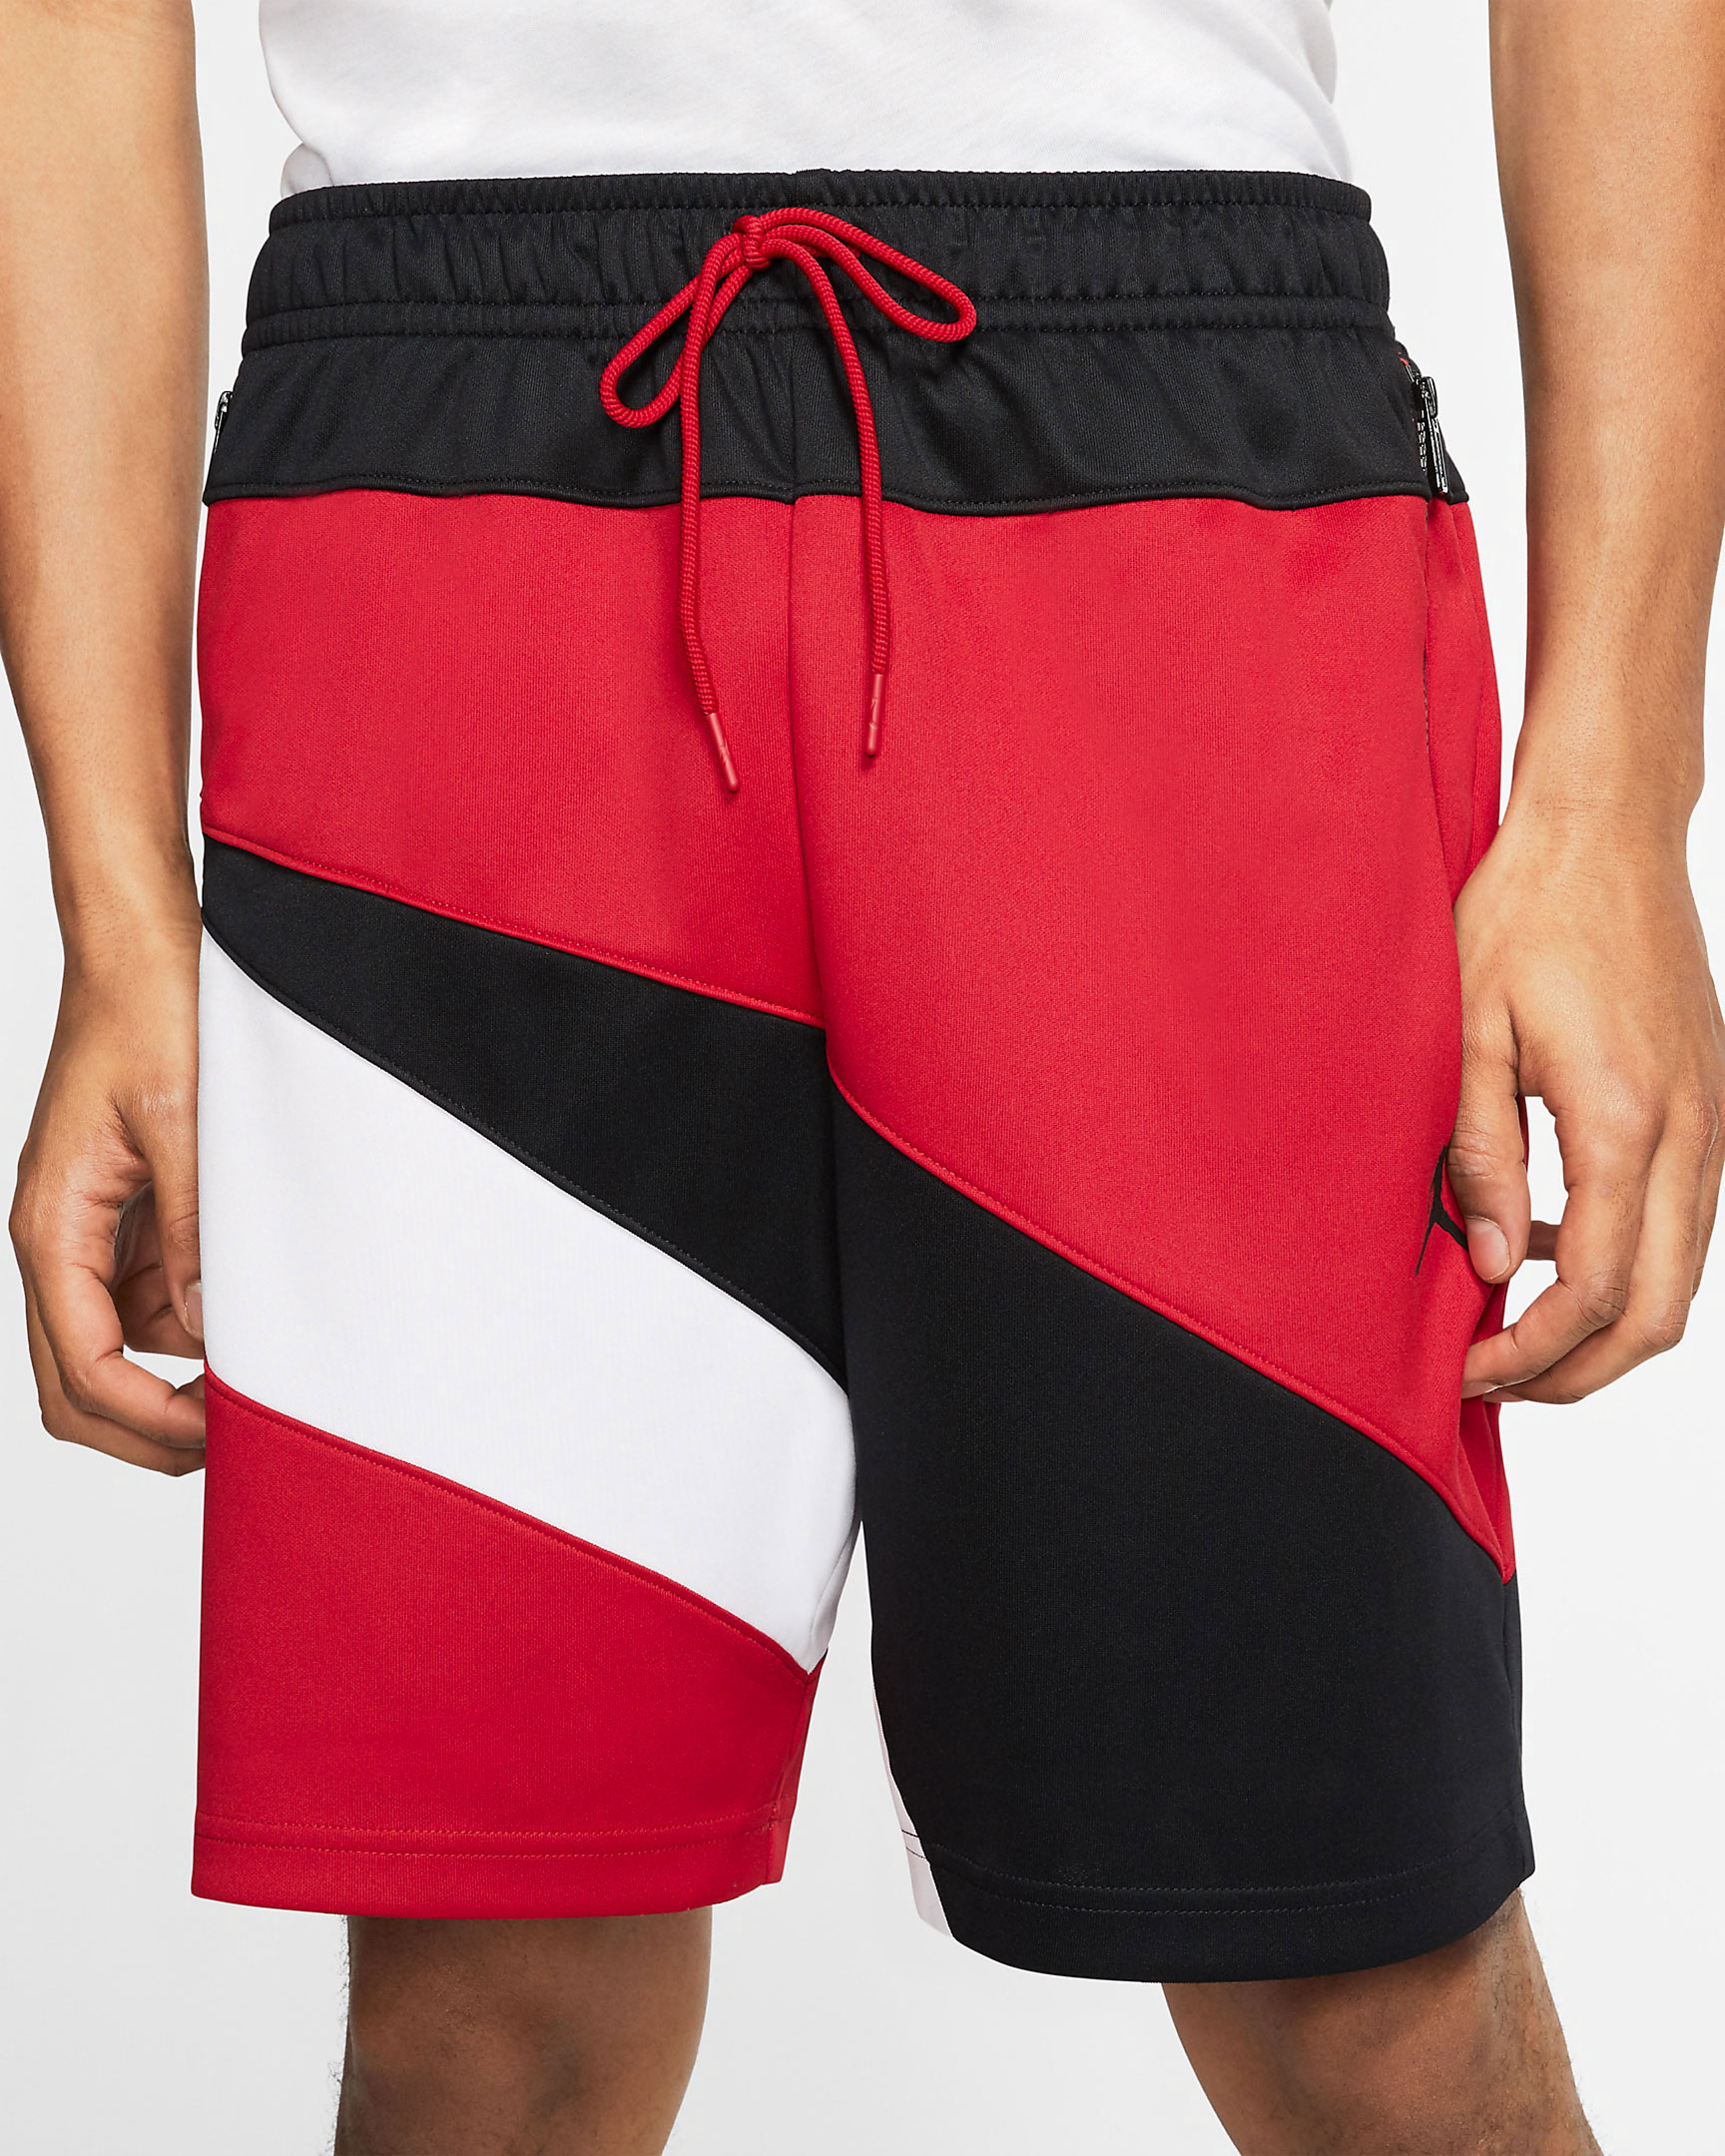 jordan-wave-shorts-red-white-black